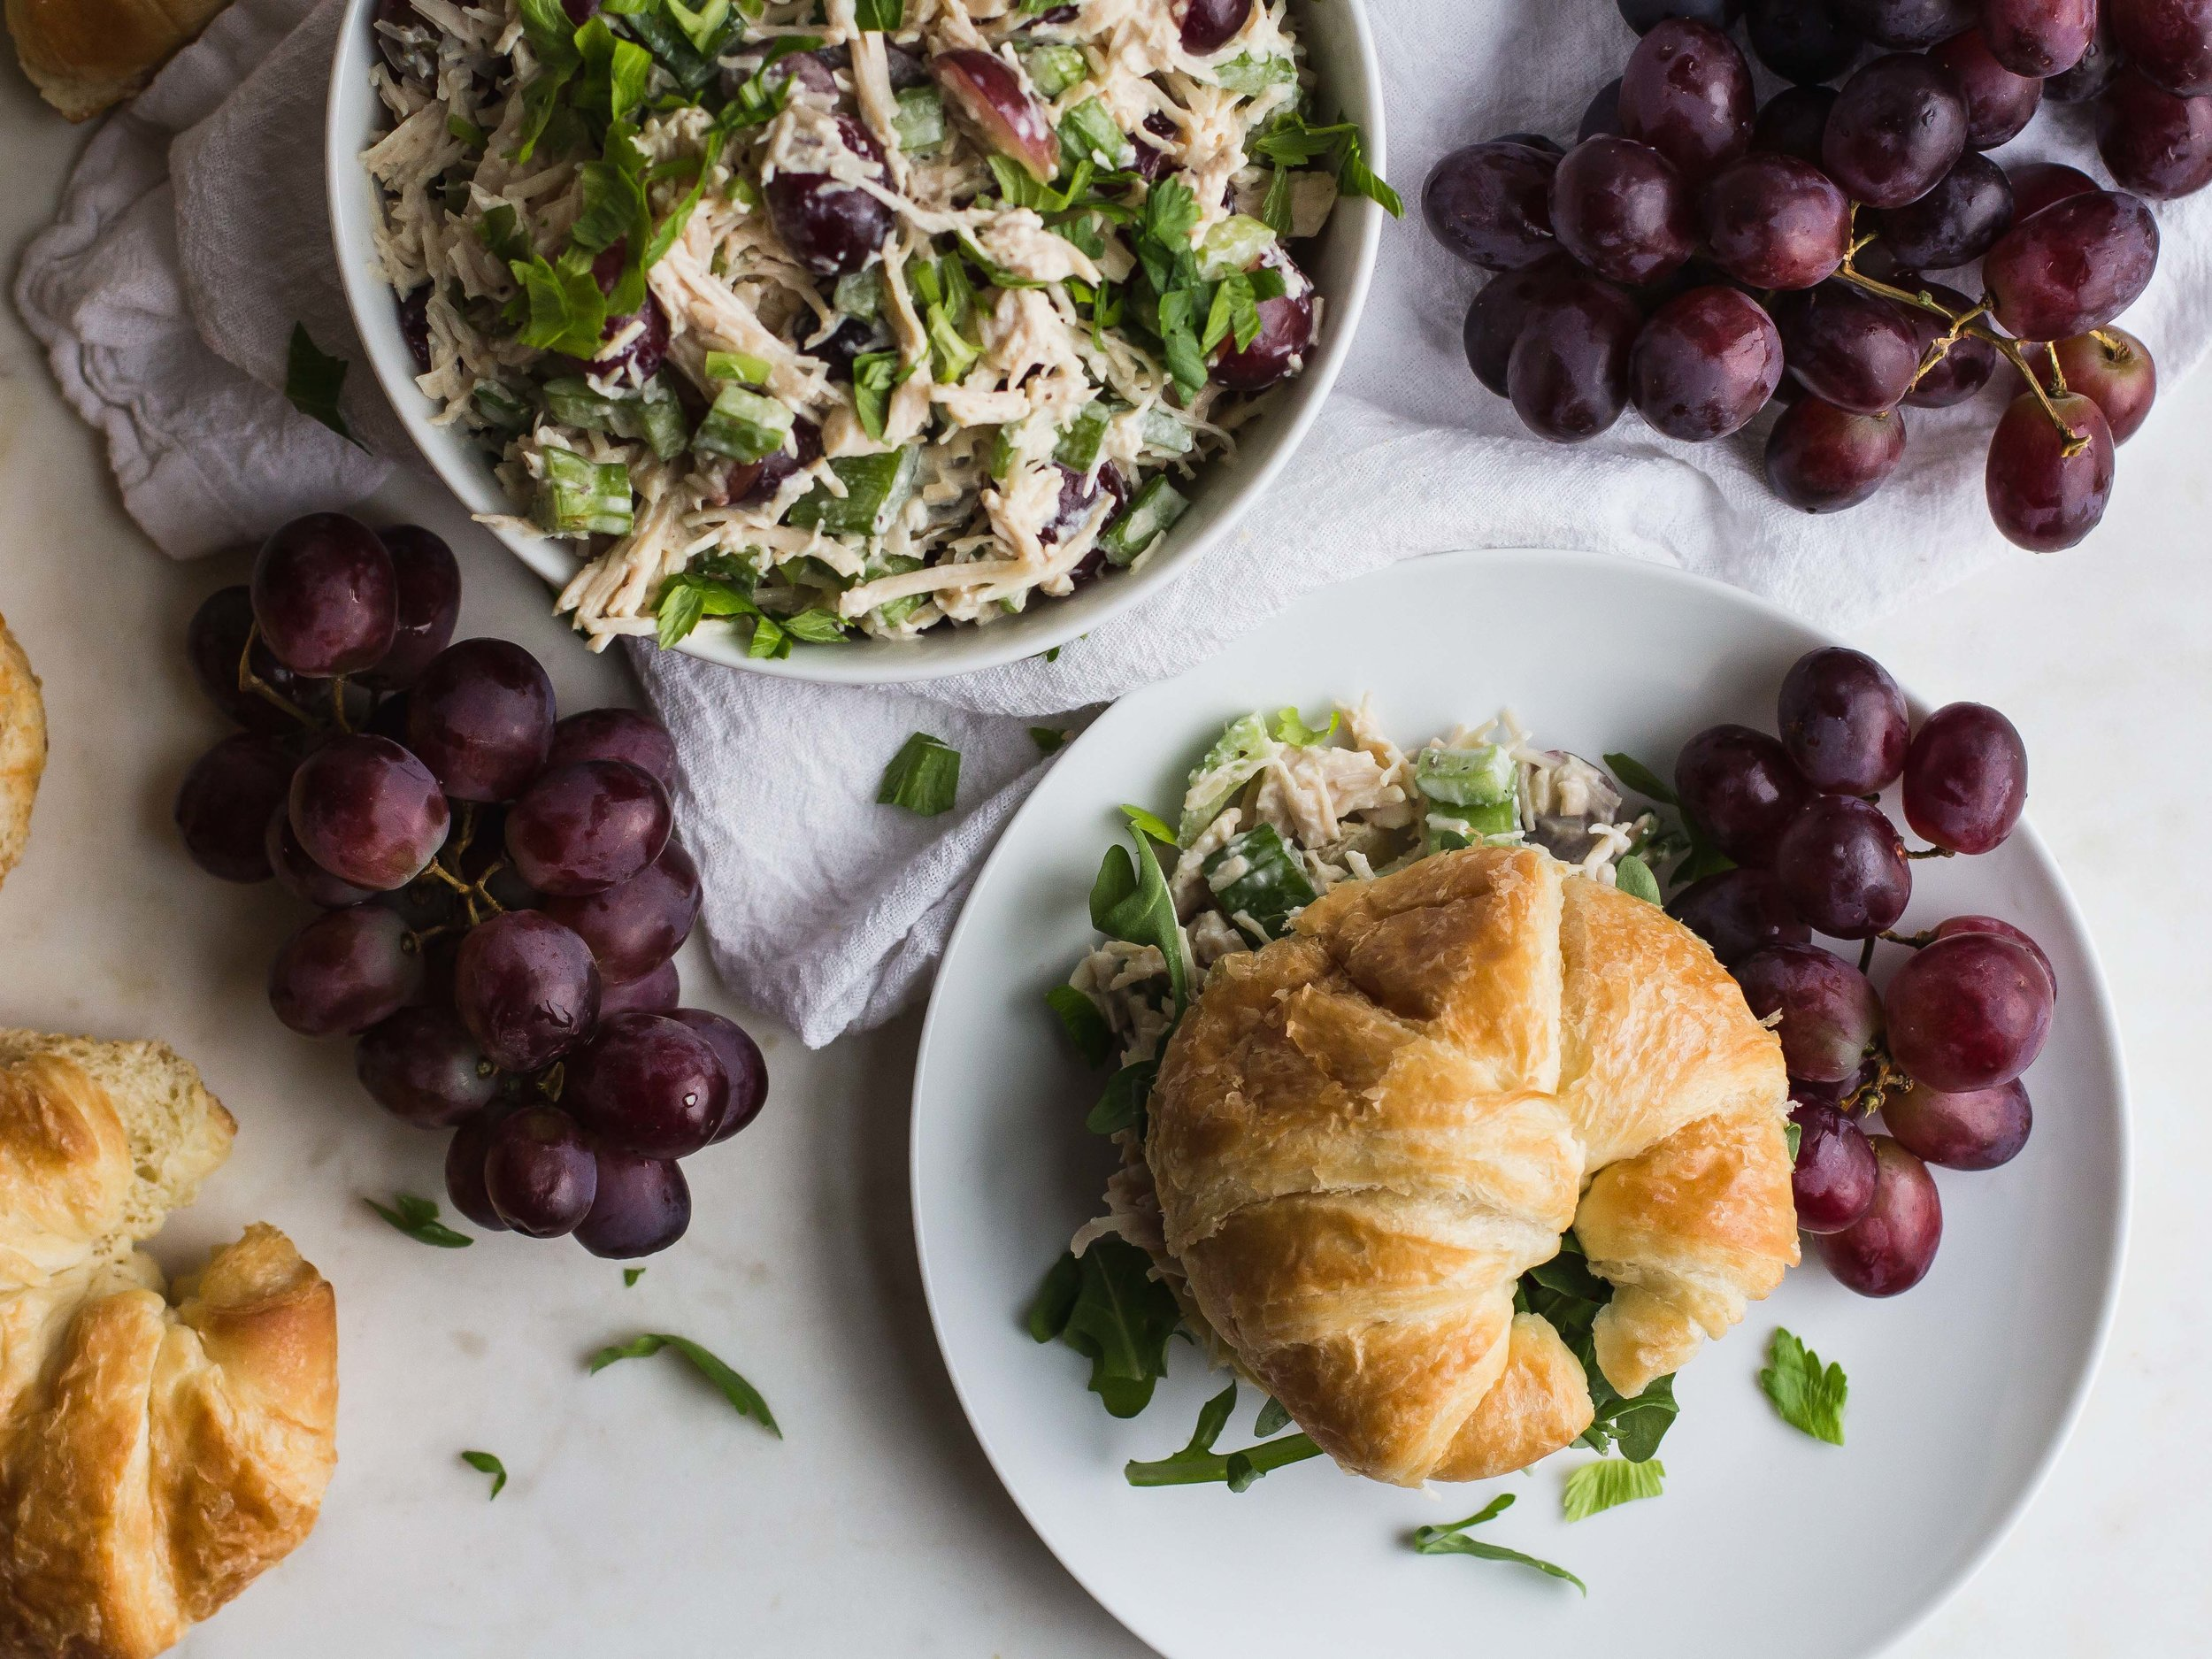 Easiest Chicken Salad [Two Ways!] | Sarah J. Hauser #lunch #weeknightdinner #chickensalad